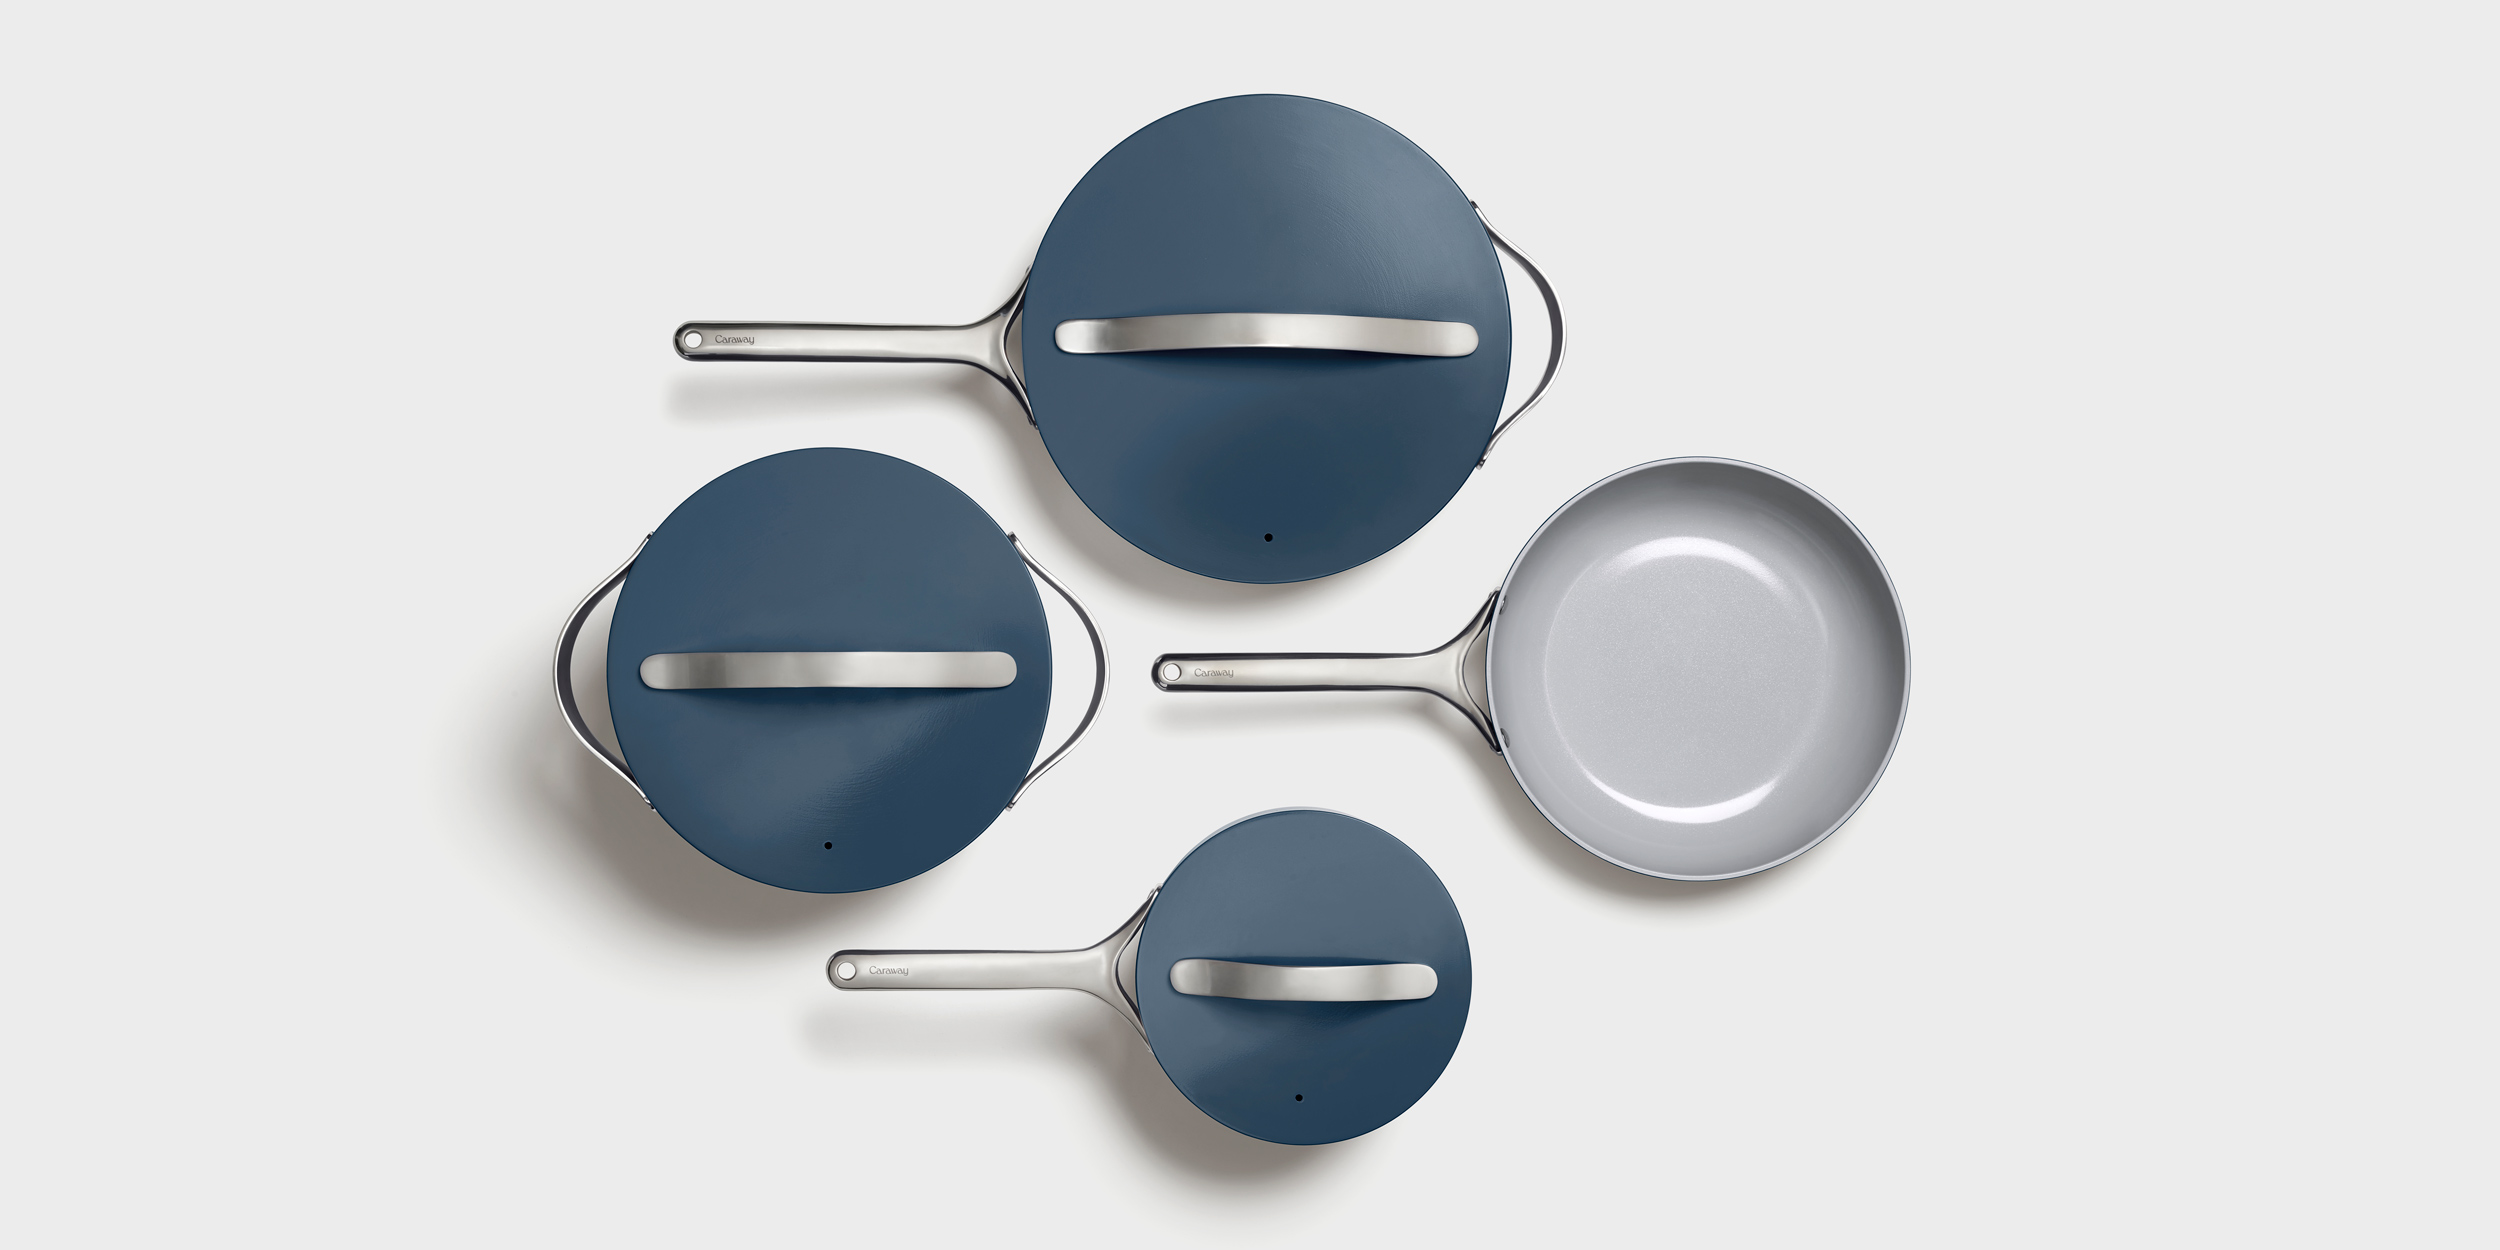 Caraway Cookware designed by Box Clever